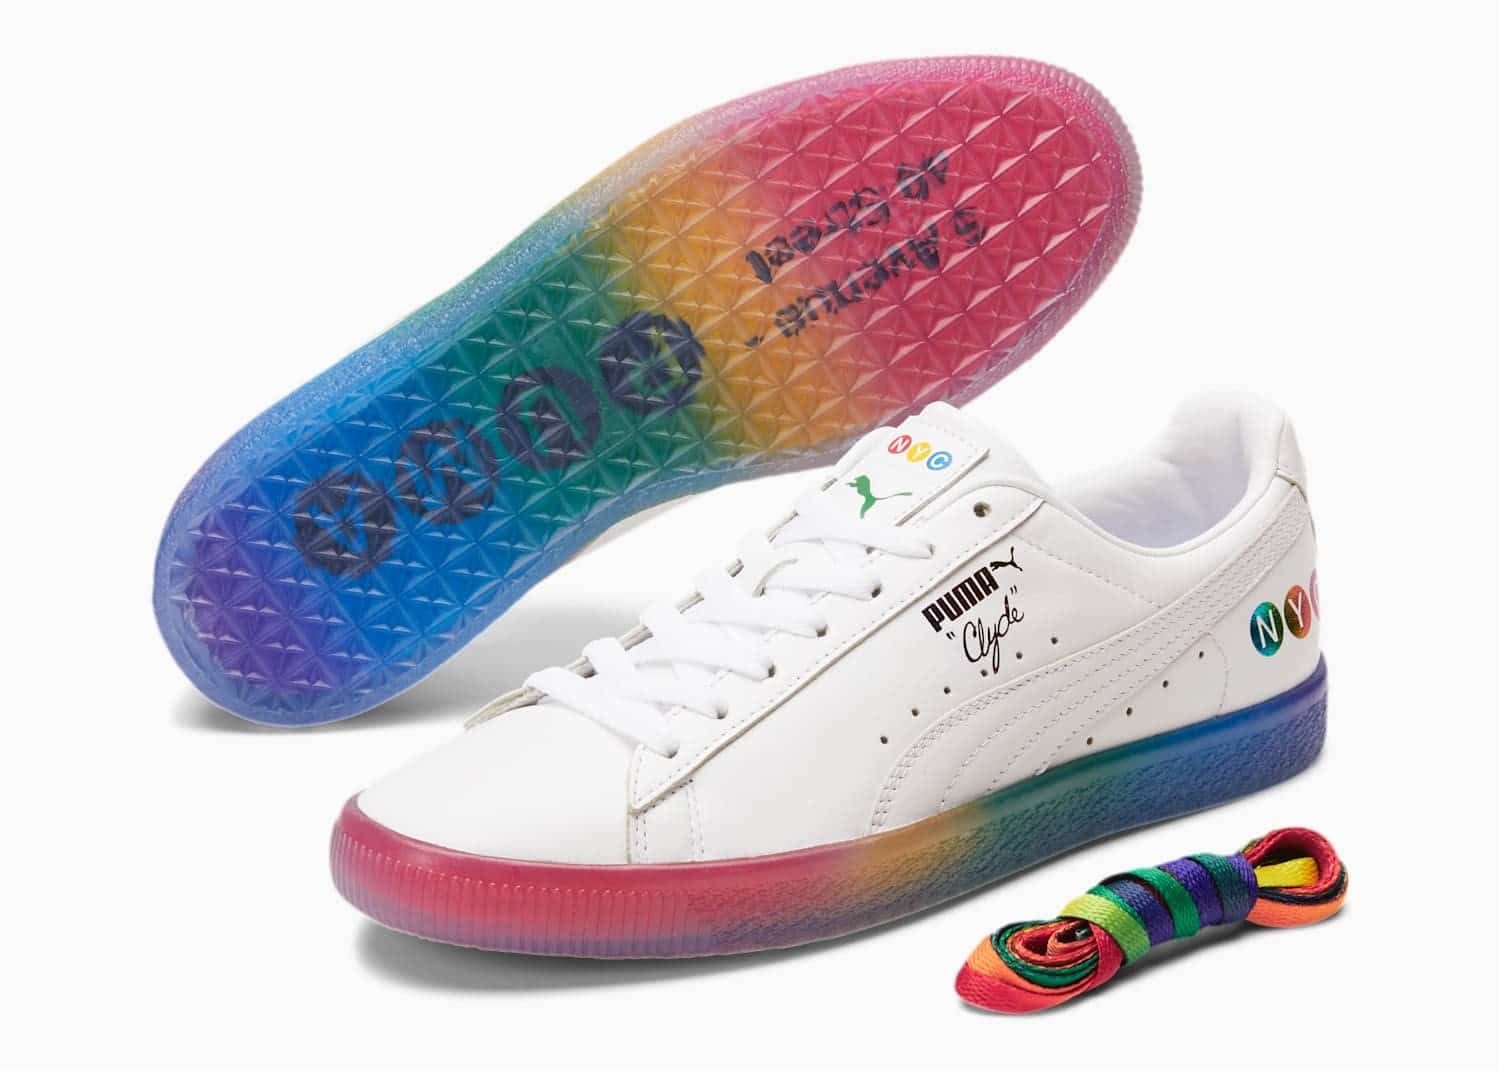 Puma's Pride Collection with Cara Delevingne is selling out fast 19